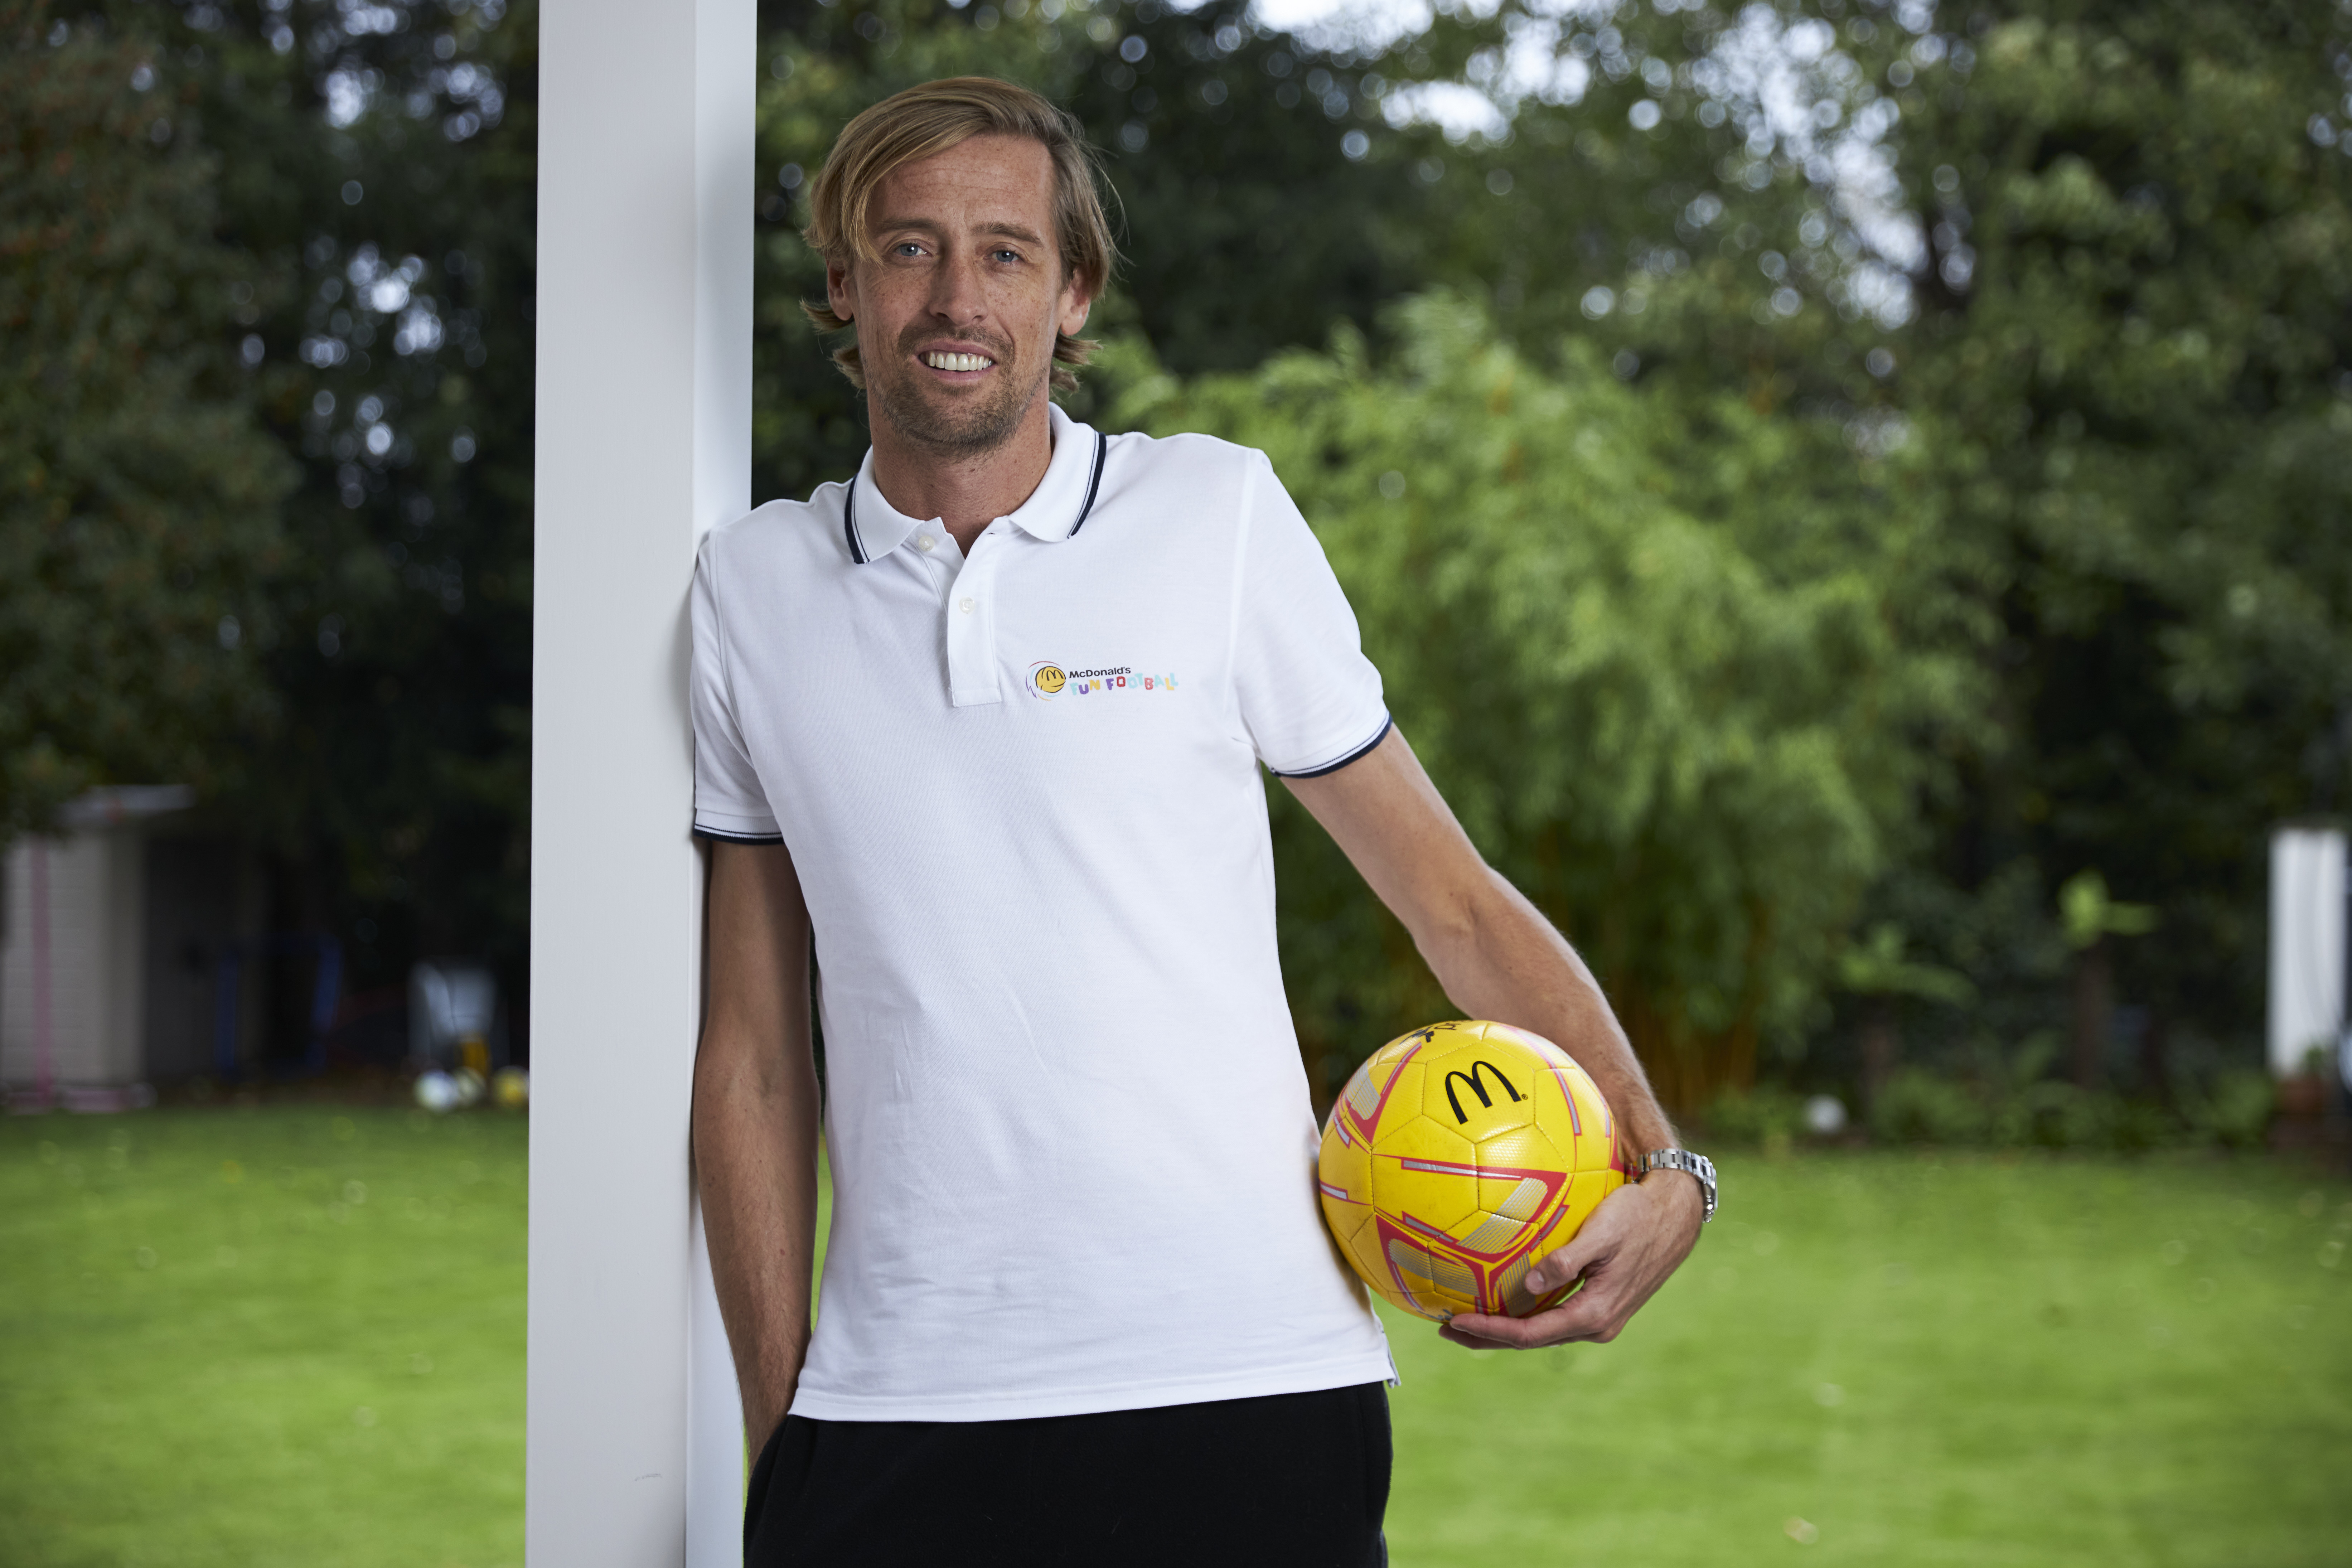 Peter Crouch is working with McDonalds to host a Fun Football session during half-term